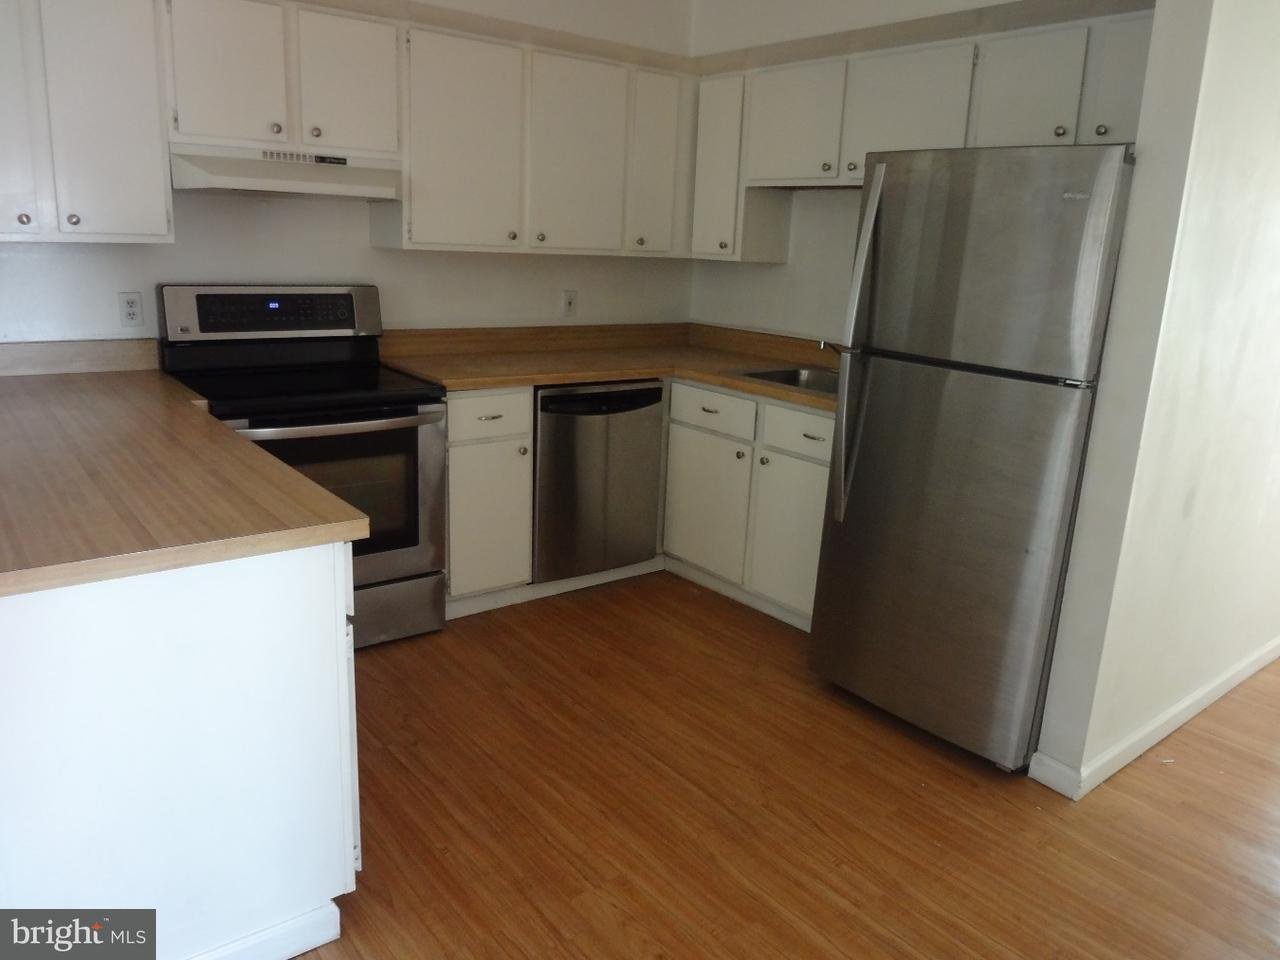 Duplex for Rent at 216 W CHESTER PIKE Ridley Park, Pennsylvania 19078 United States